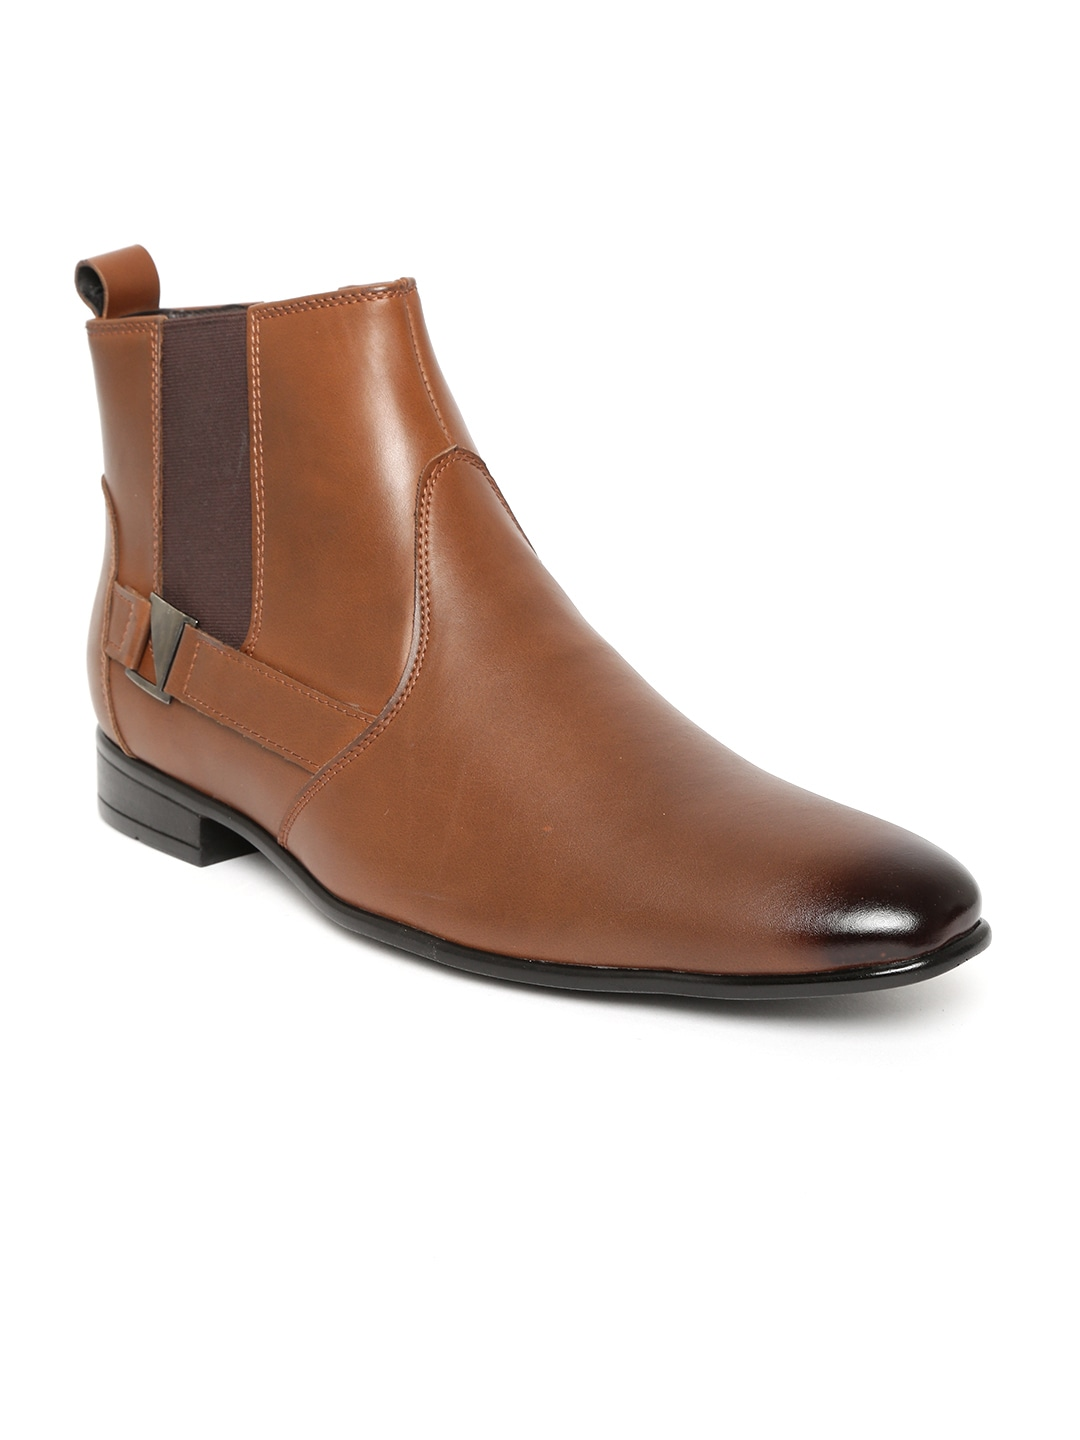 a68a245a8d6421 Shoes for Men - Buy Mens Shoes Online at Best Price